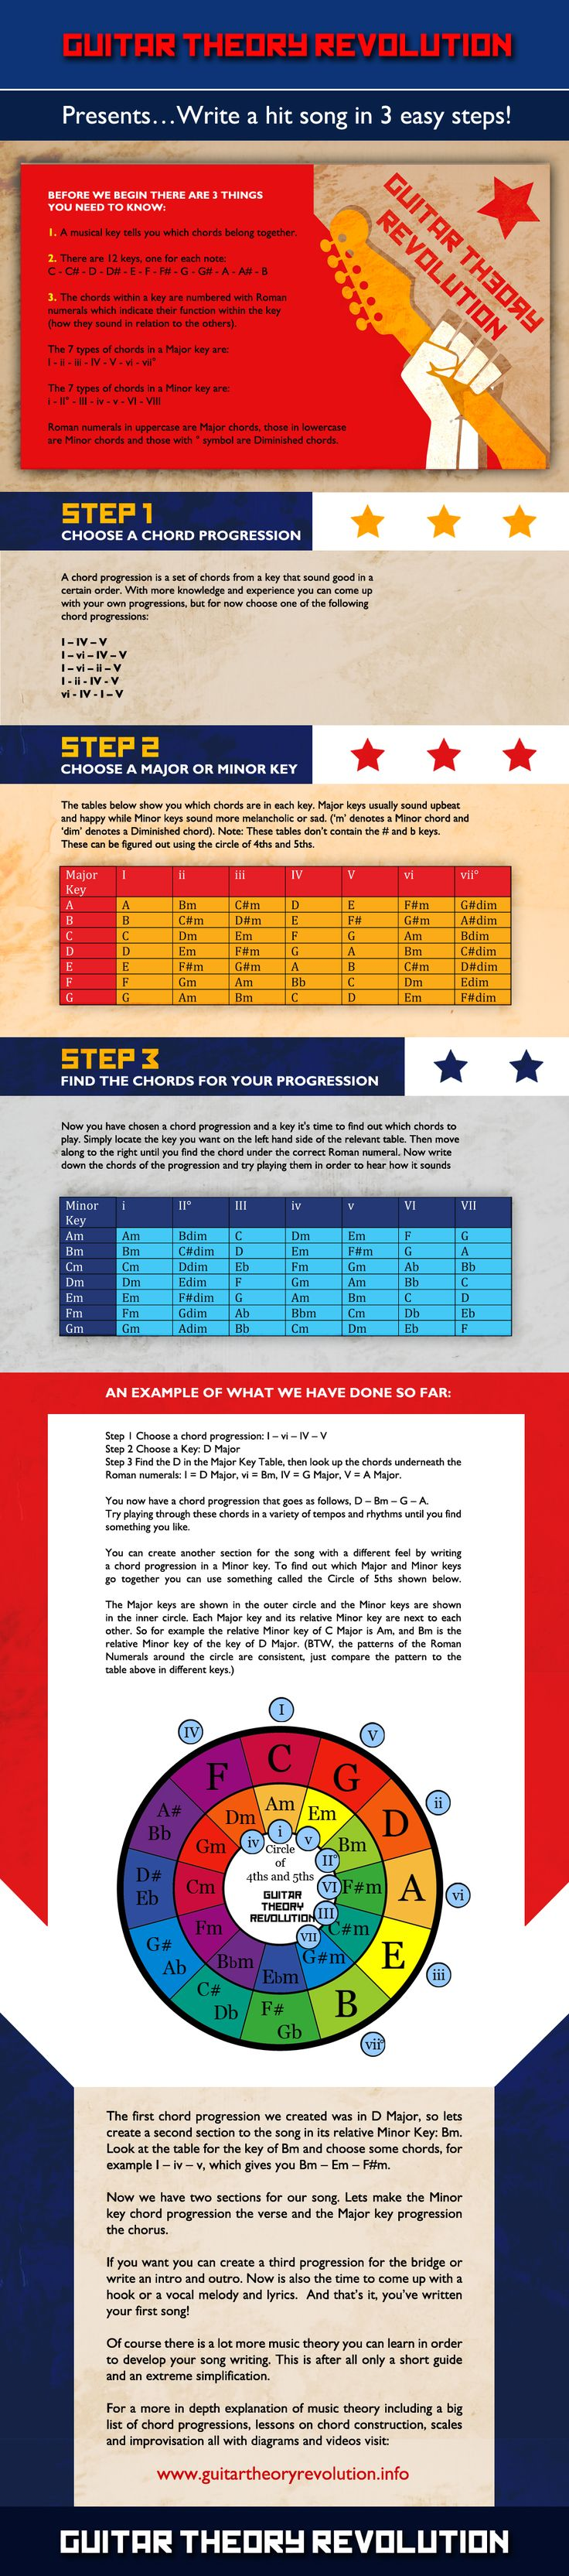 How to write a hit song in 3 easy steps. This infographic explains very basic music theory to guitar players and shows them how they can write their own songs easily.